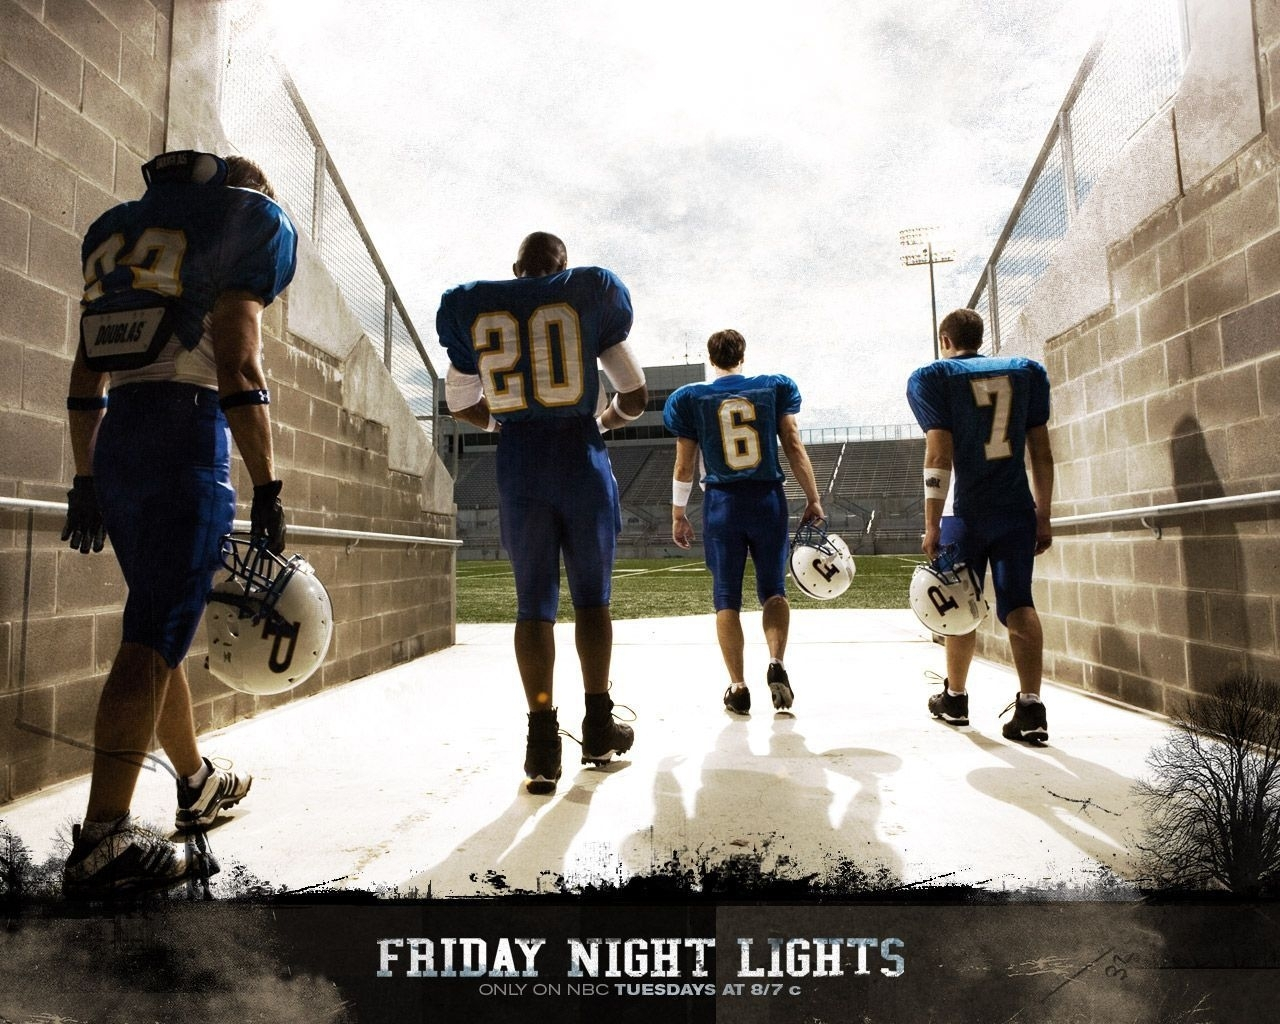 friday night lights wallpapers - wallpaper cave | all wallpapers